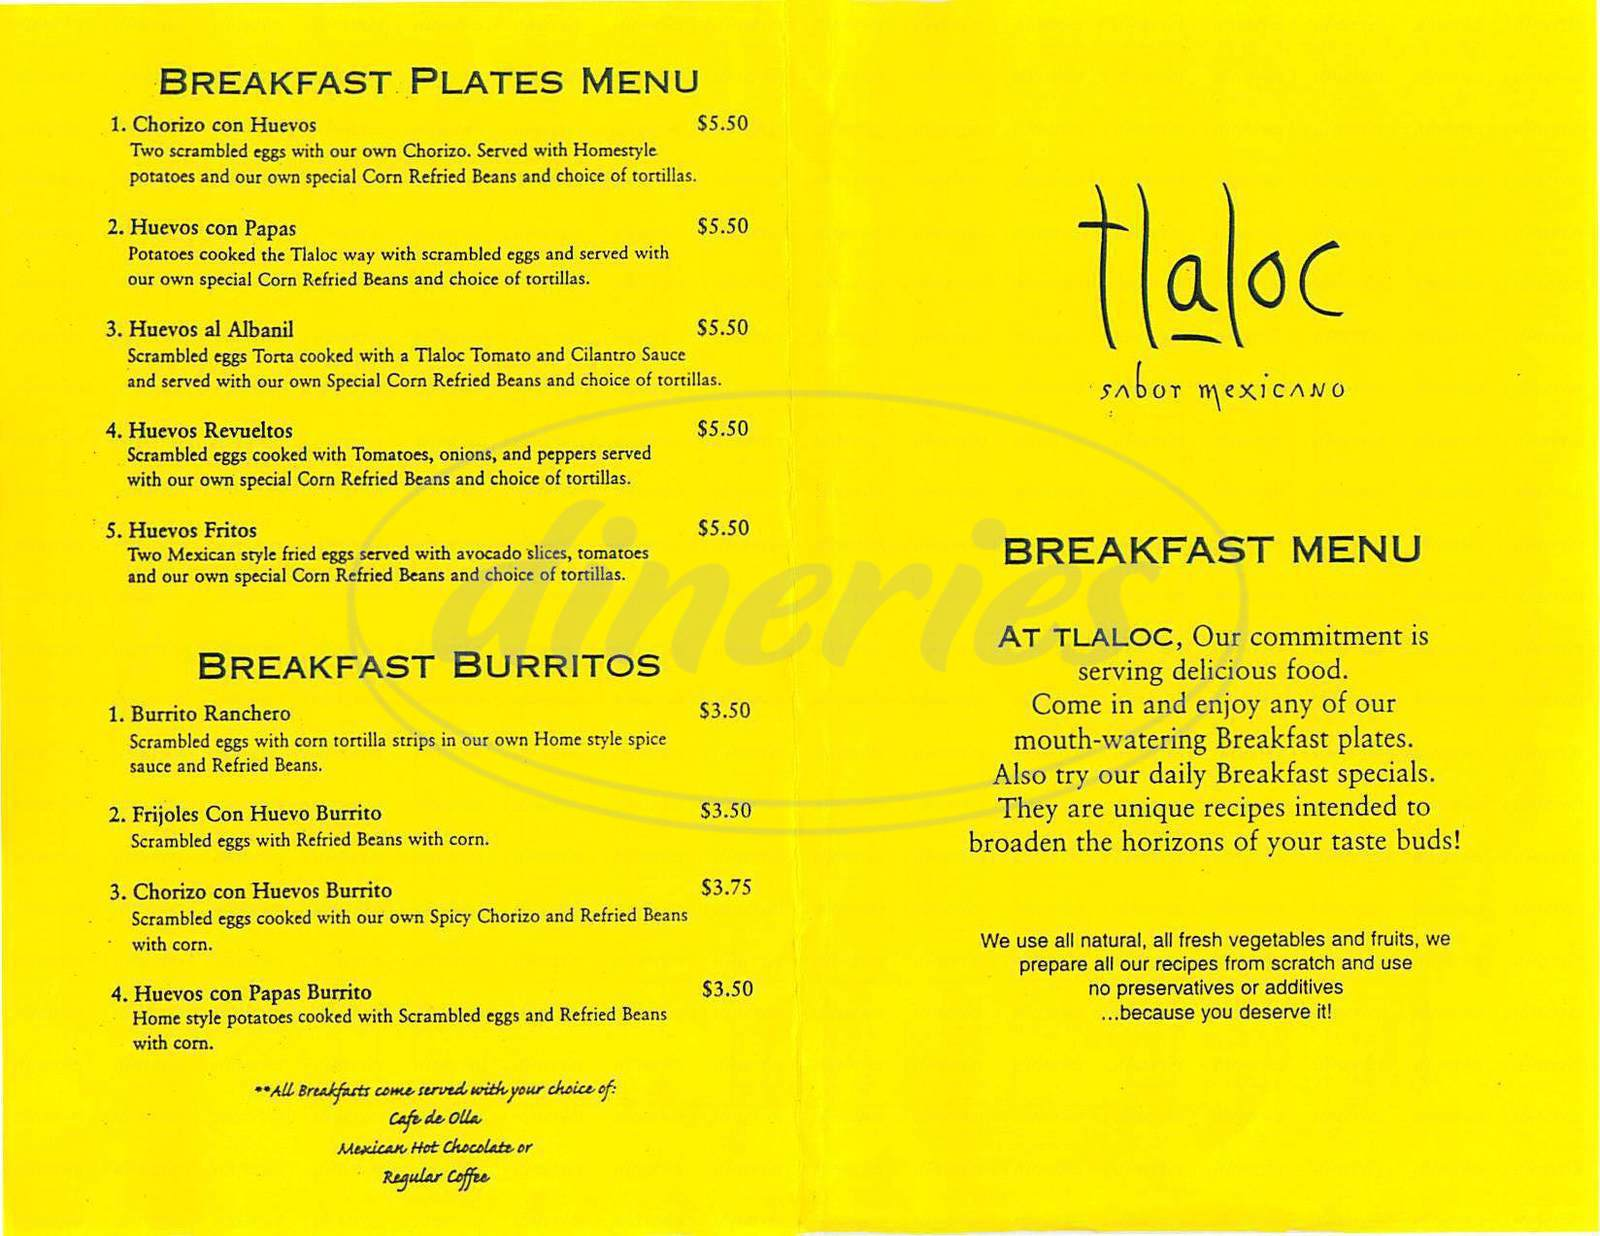 menu for Tlaloc